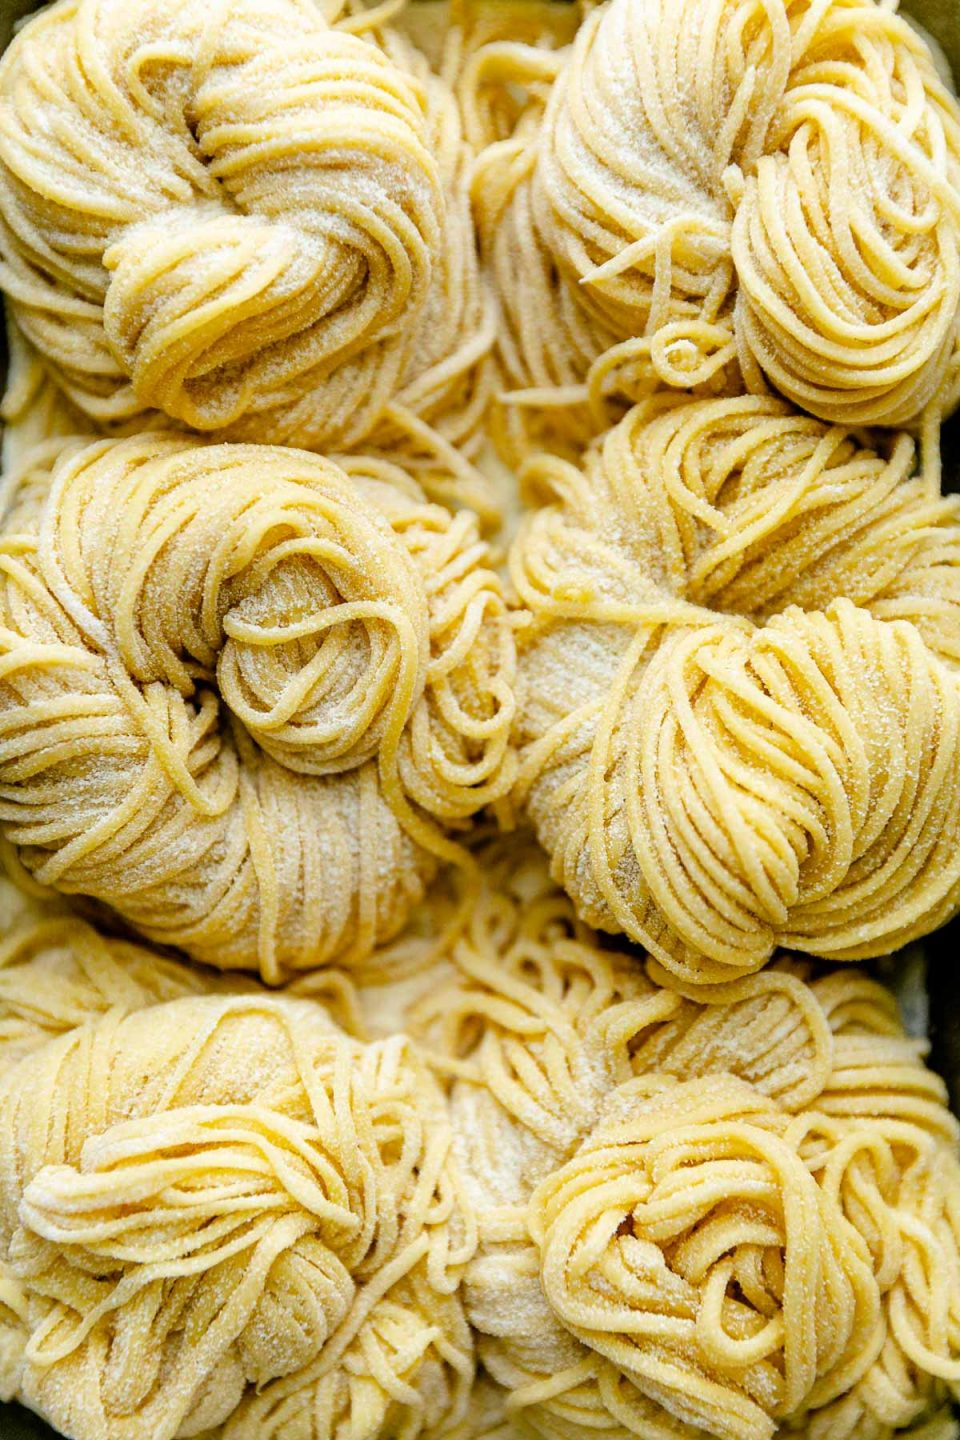 A close up of six bundles of fresh pasta cut into spaghetti noodles are arranged on a small aluminum baking sheet and dusted with semolina flour.